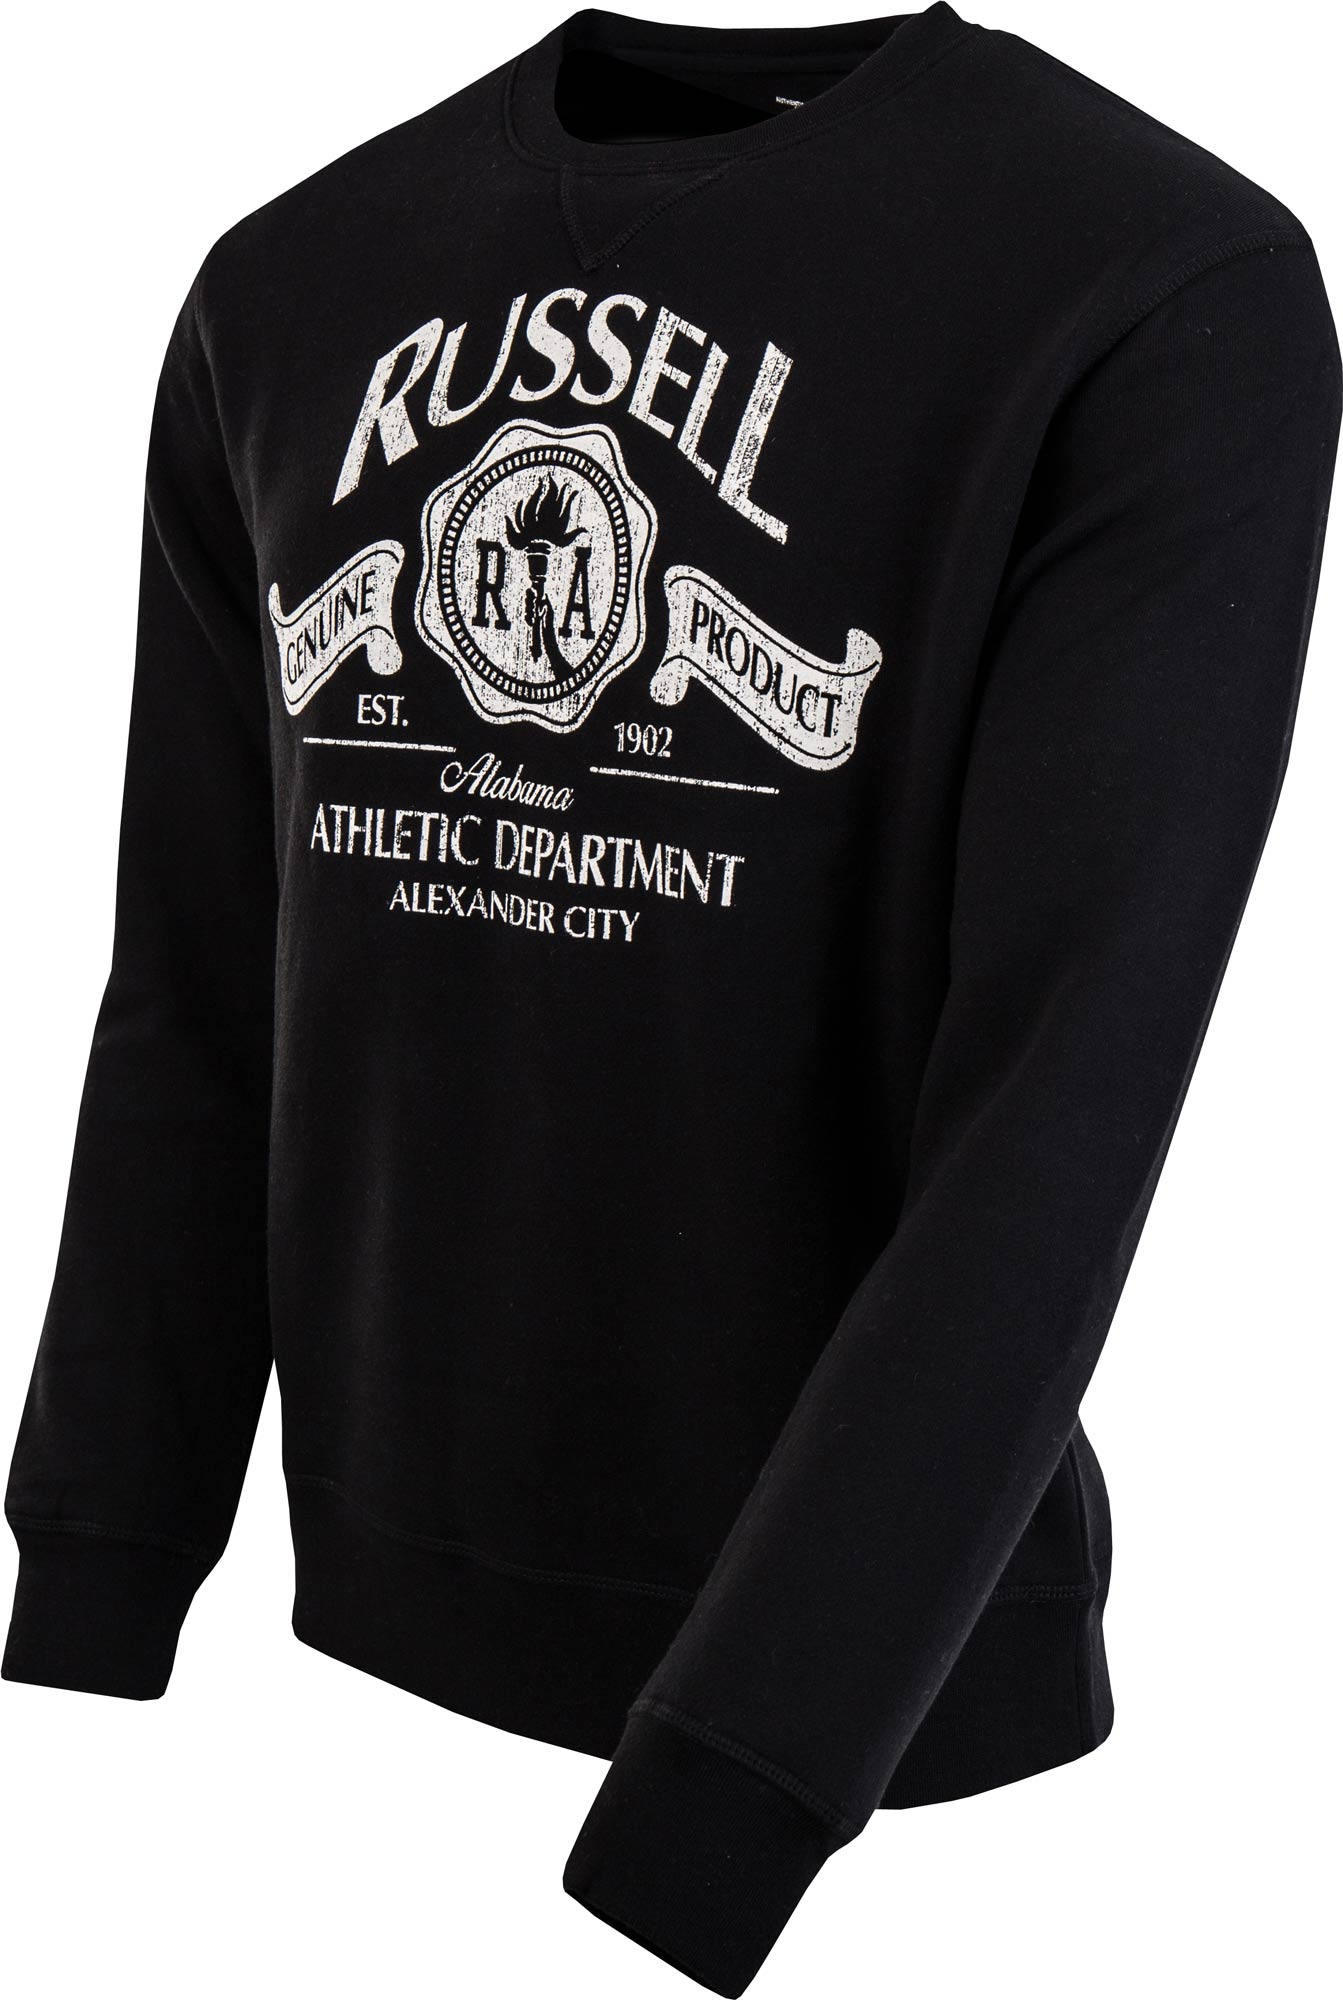 45c57122e8ce Russell Athletic CREW NECK SWEAT WITH RUSSELL DISTRESSED PRINT ...